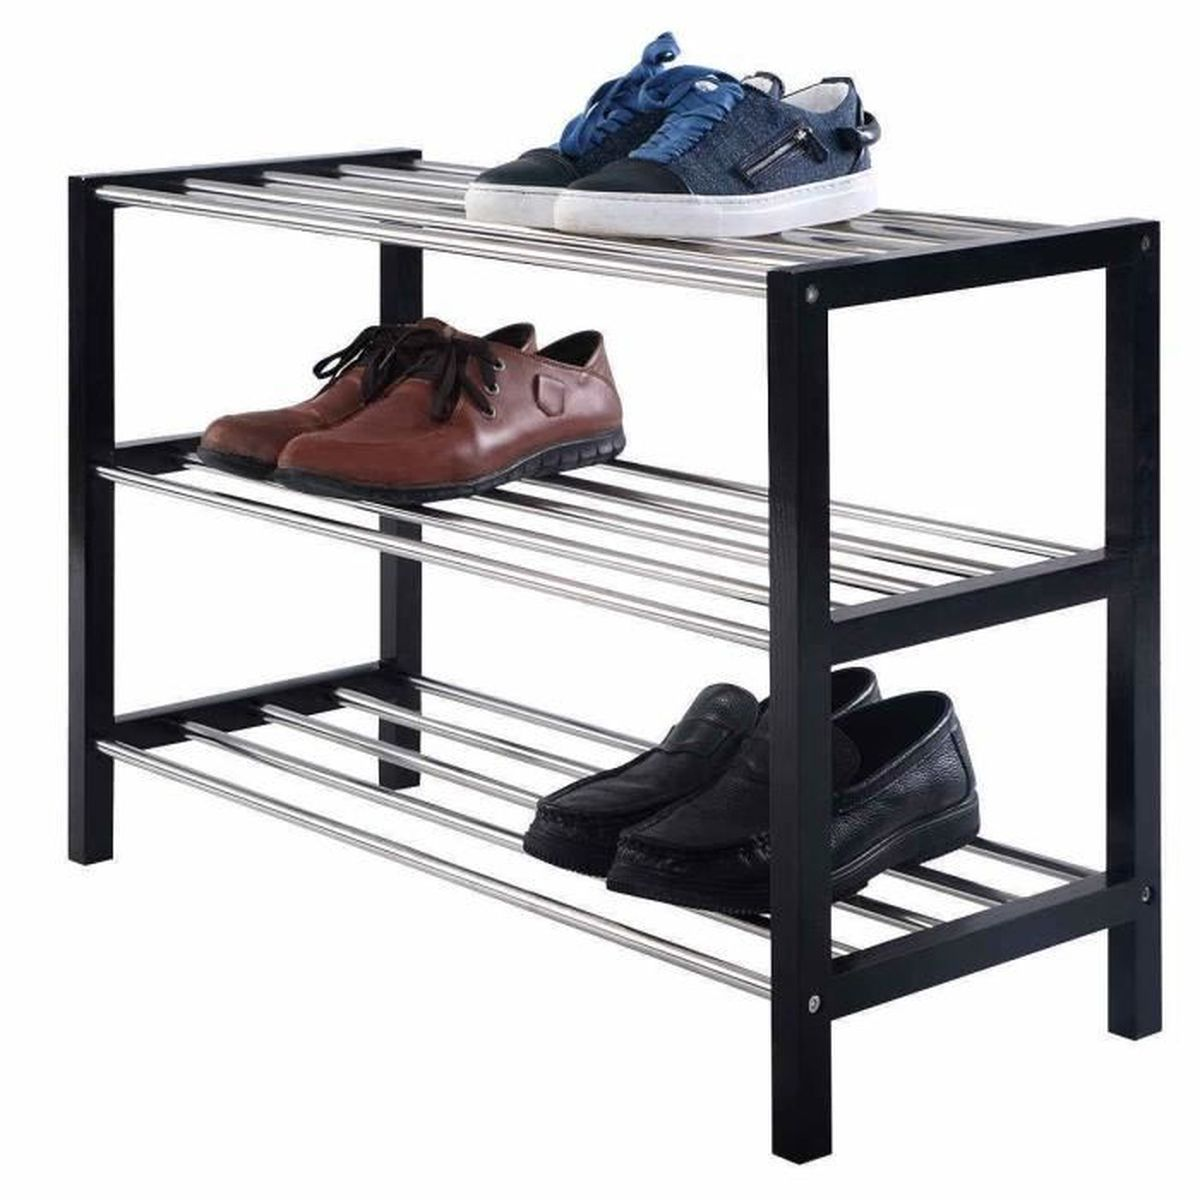 etagere chaussures tag re chaussures relaxon group portis shoe rack ikea shortened lill ngen. Black Bedroom Furniture Sets. Home Design Ideas